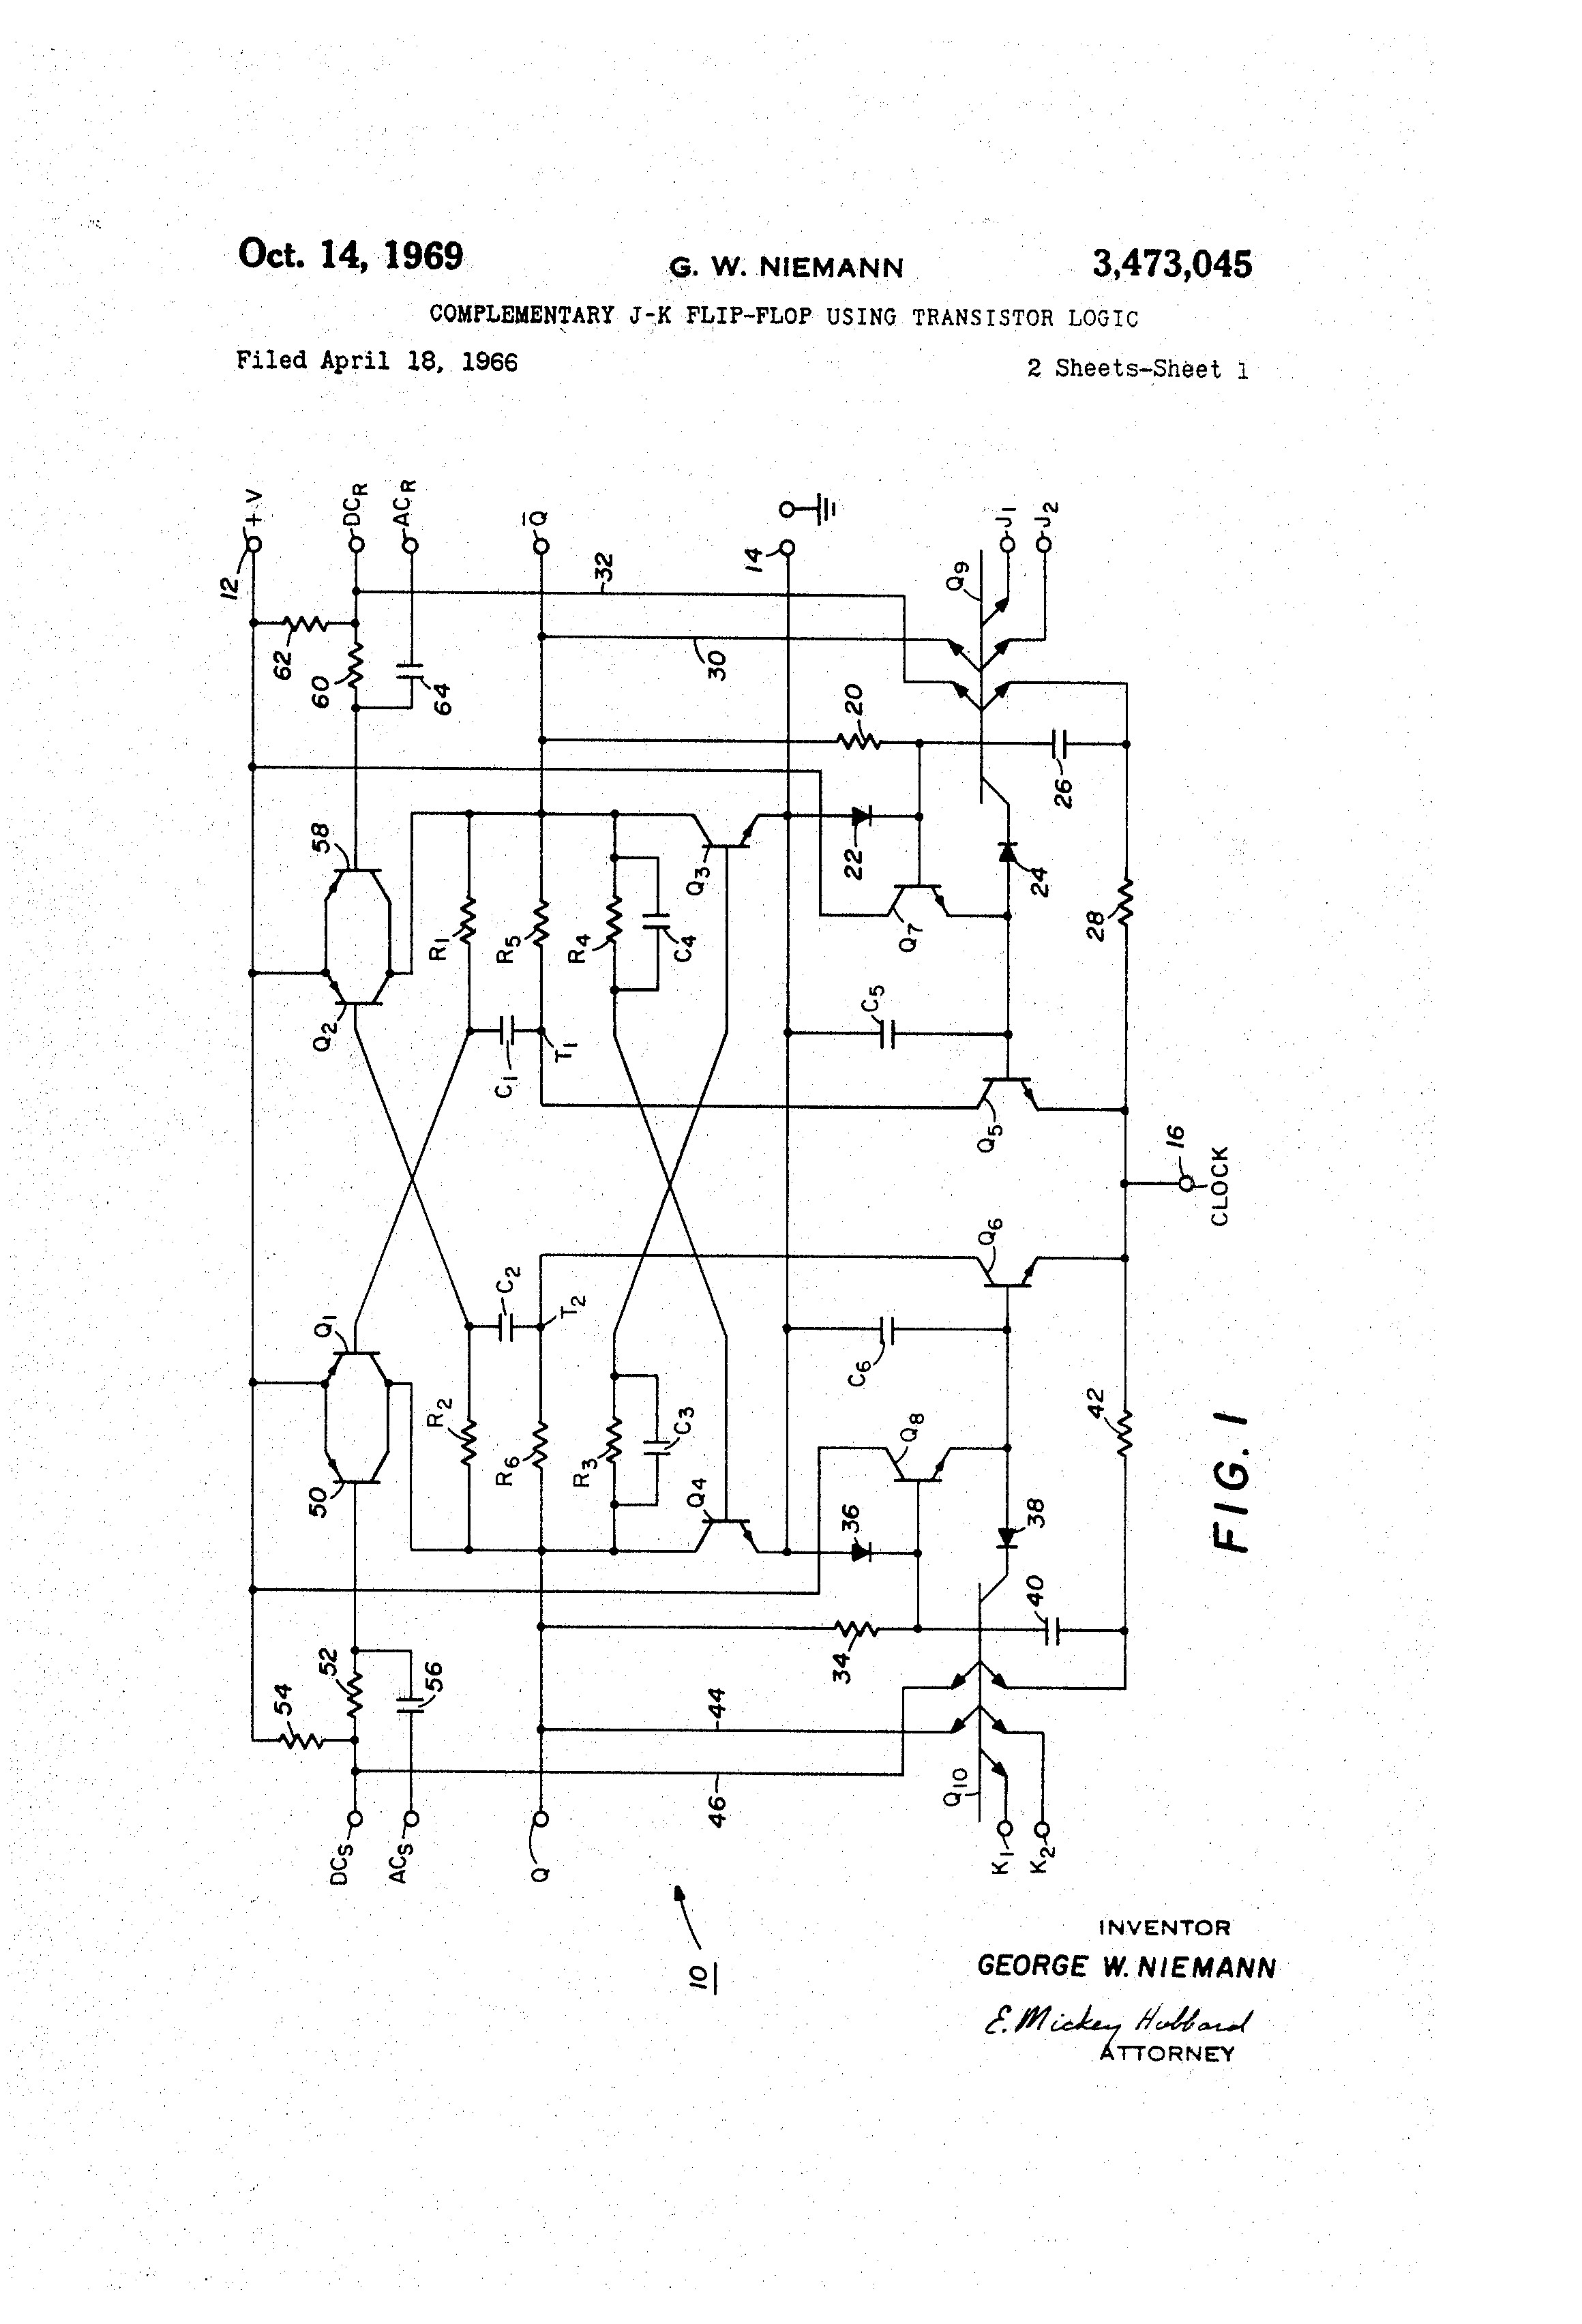 T Flip Flop Circuit Diagram Wiring Image Logic For Ponent Schematic Patent Us Plementary J K Using Transistor Circu